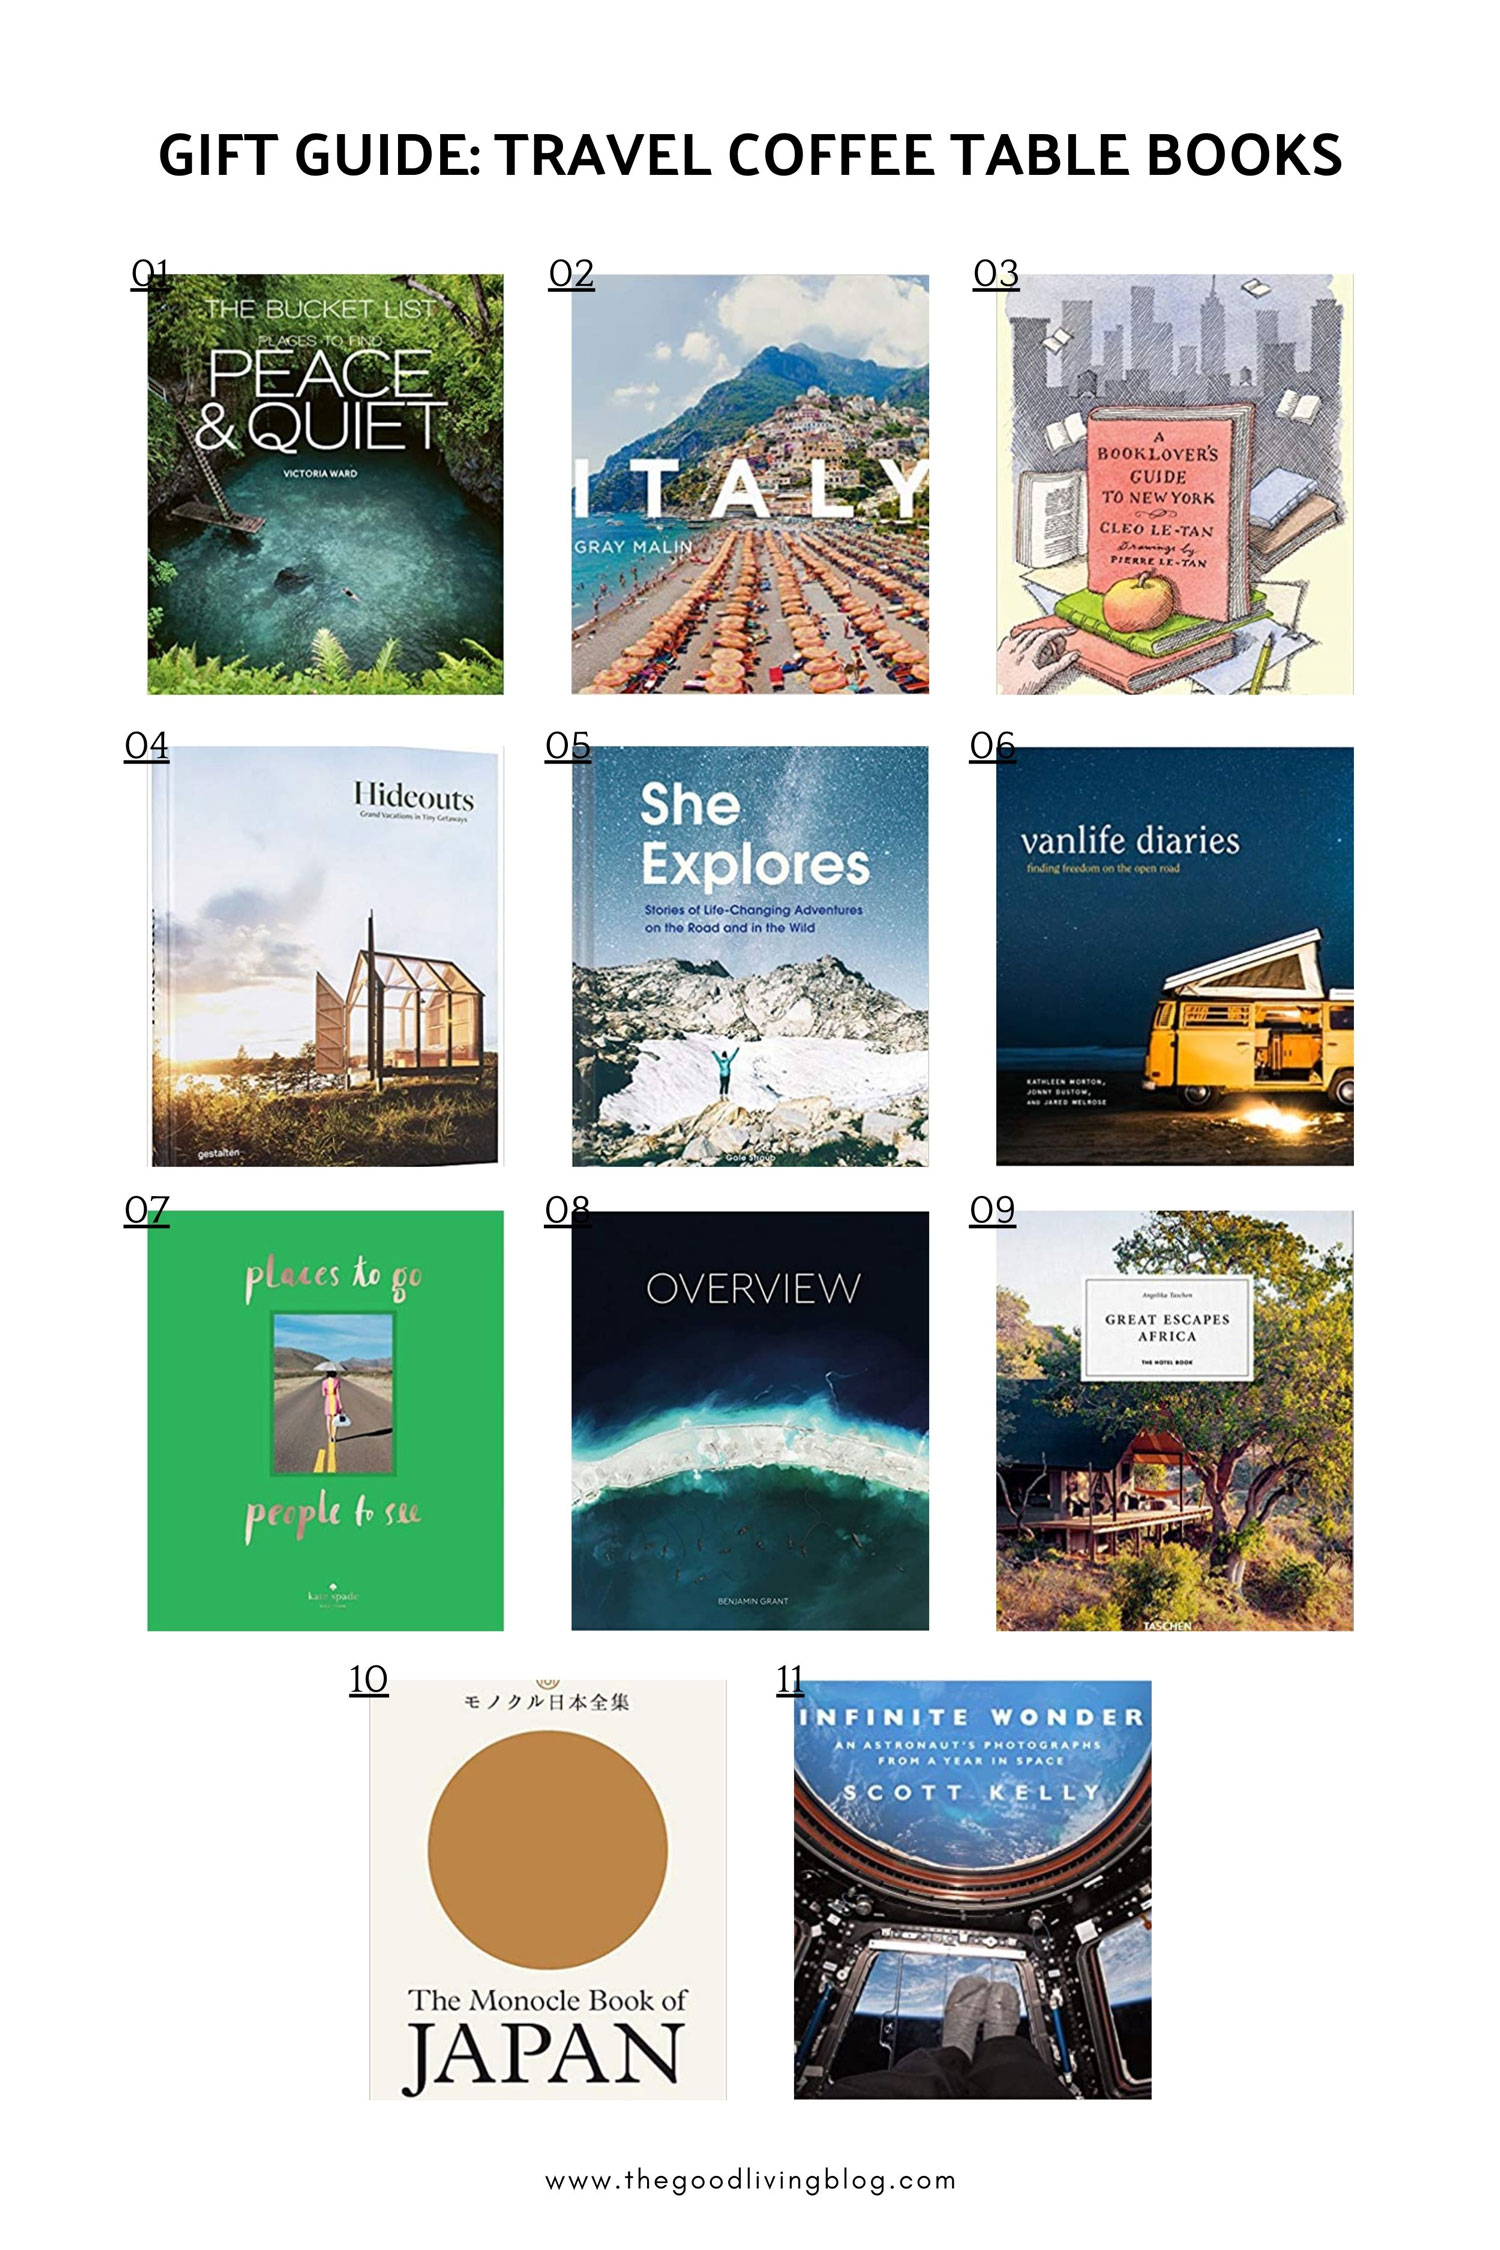 21 Fabulous Travel Coffee Table Books That Make For Amazing Gifts Inspire Wanderlust Sage Bloom